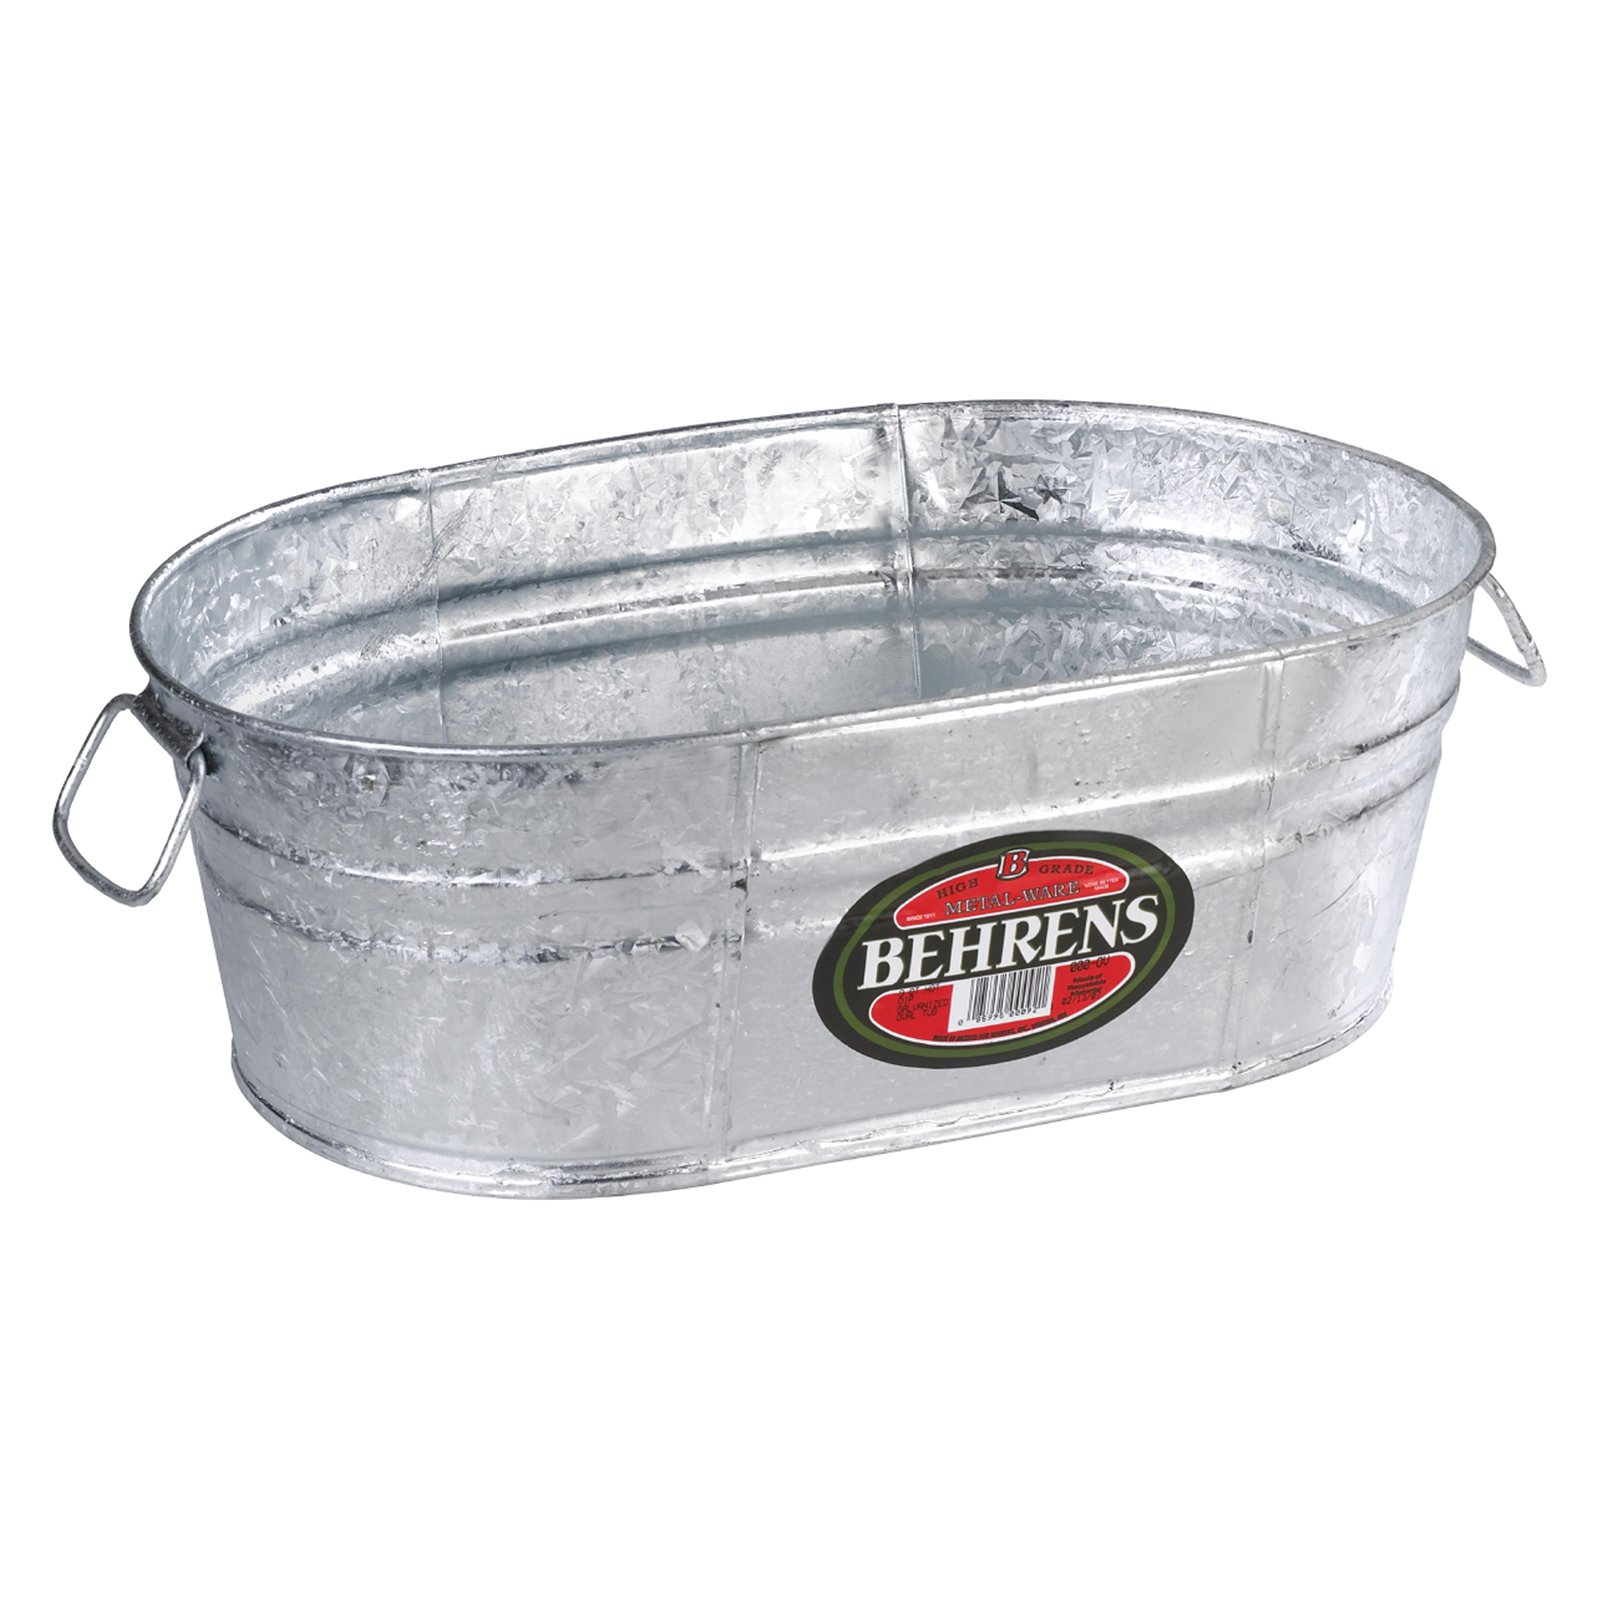 Behrens Hot Dipped Steel Oval Beverage Tub